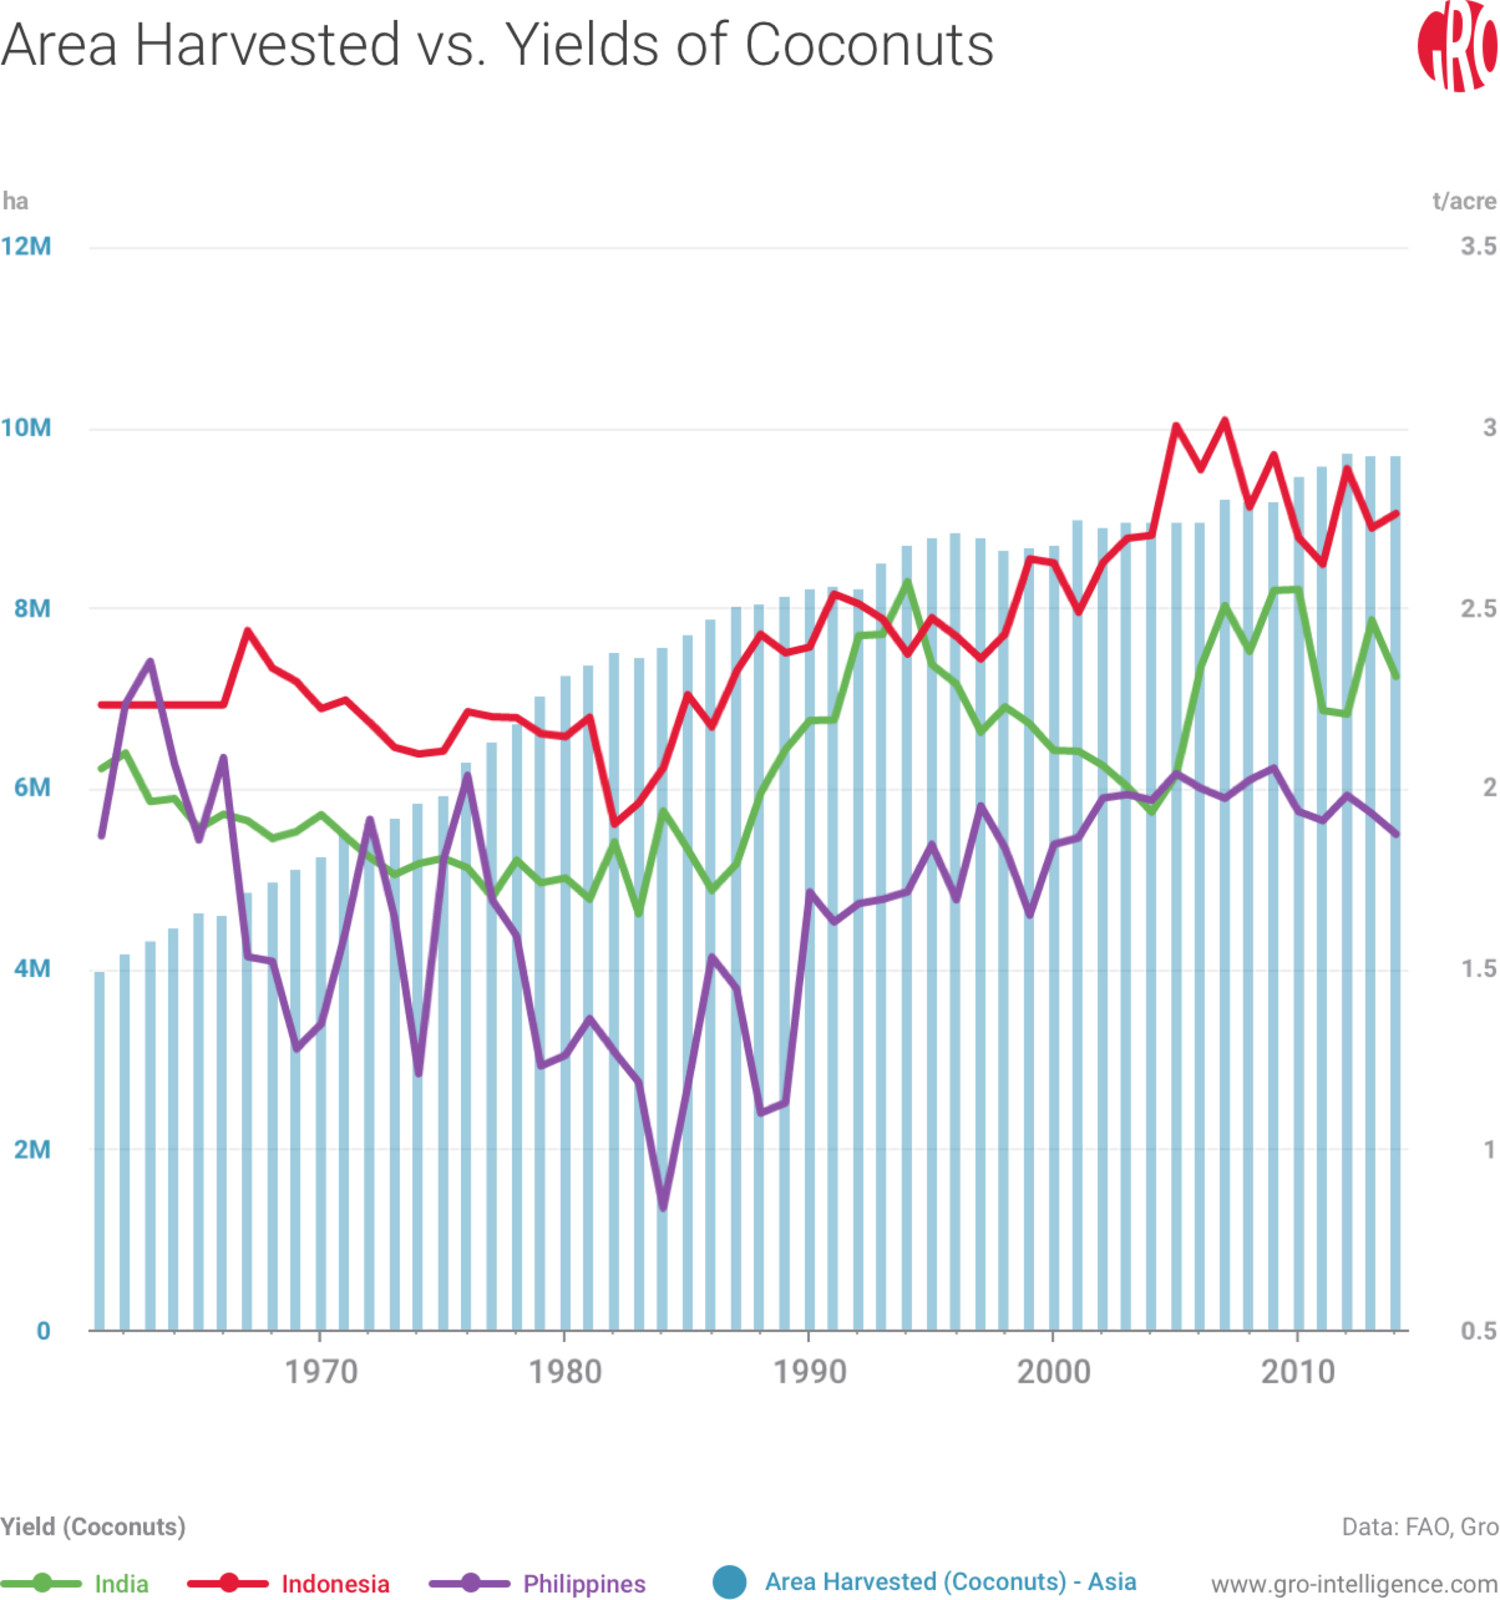 Yield of coconuts hasn't seen a sustained increase in the last few decades